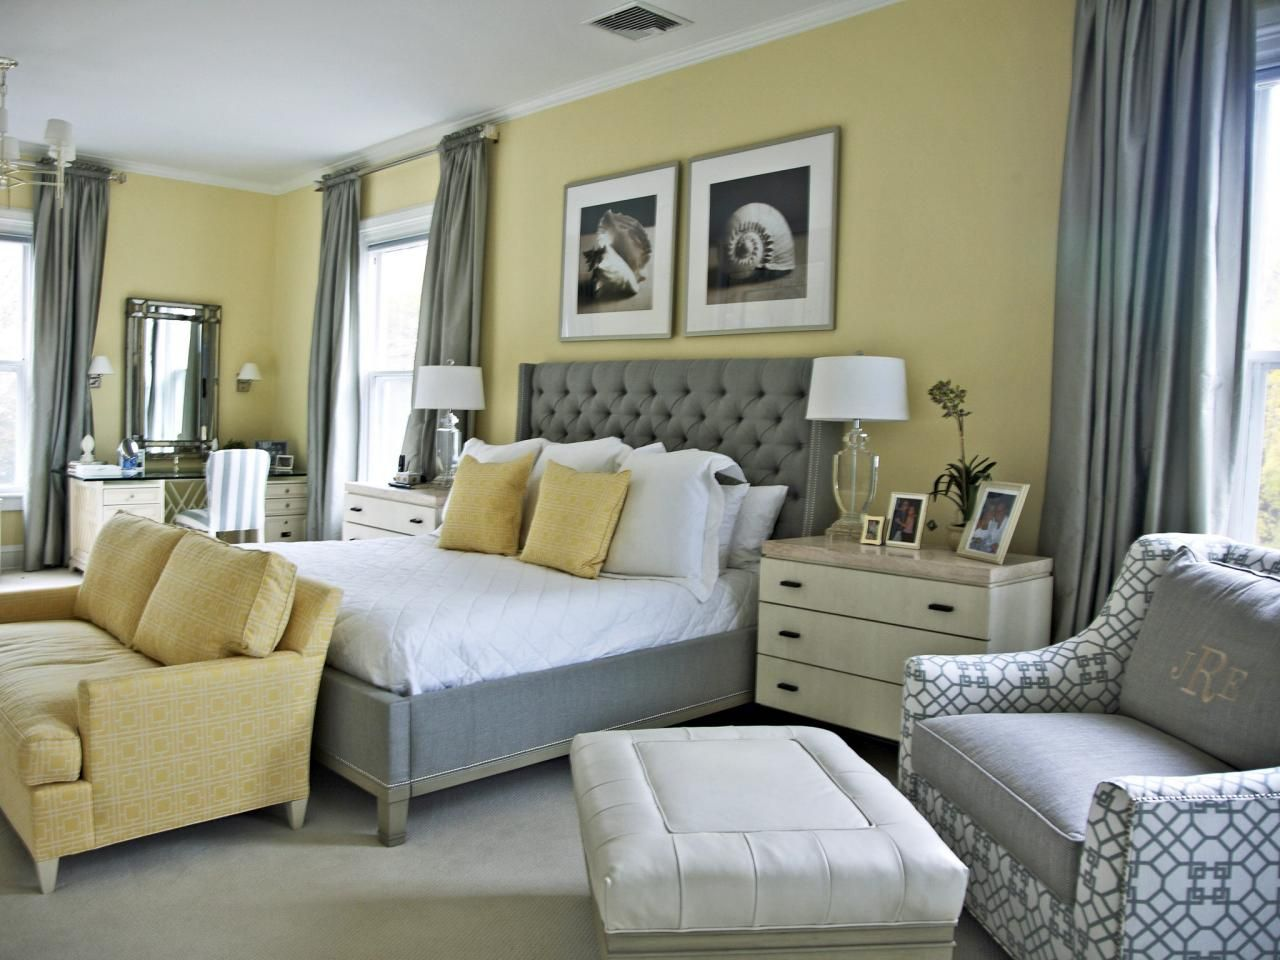 Grey bedroom paint colors - Pictures Of Bedroom Color Options From Soothing To Romantic